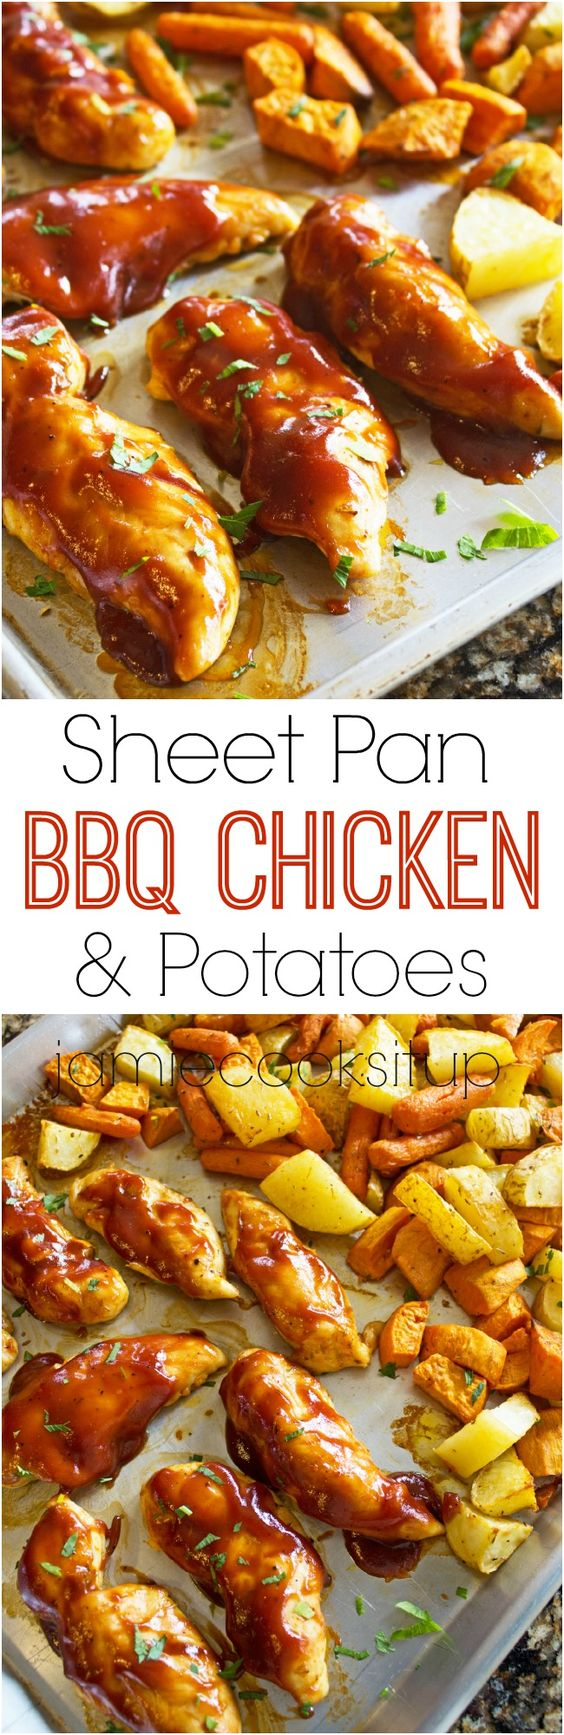 Sheet Pan BBQ Chicken and Potatoes from Jamie Cooks It Up!